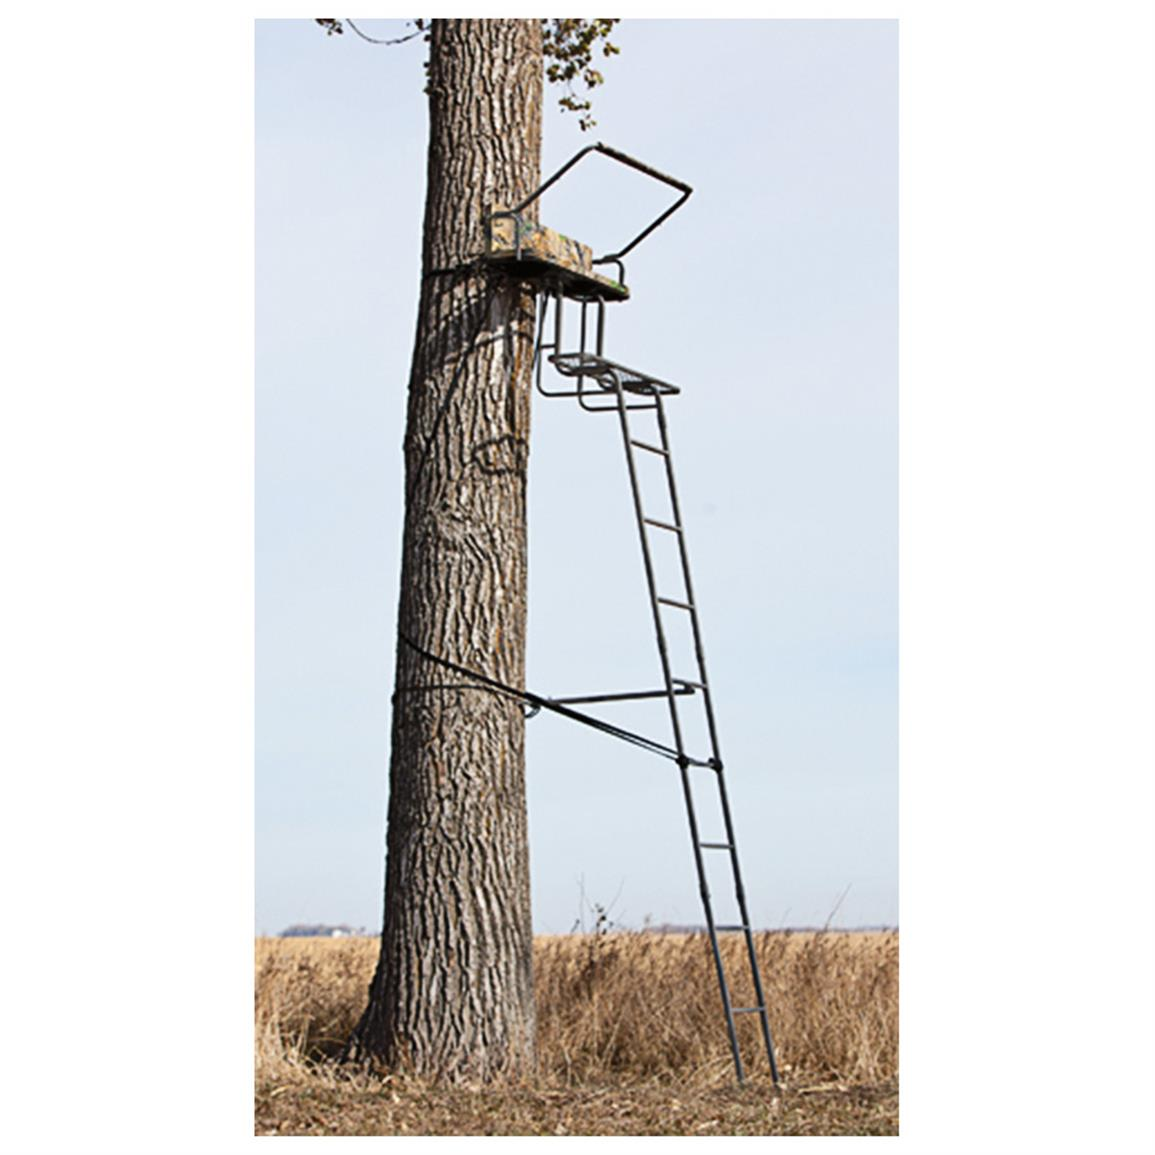 Sniper 15 foot Deluxe 2-man Ladder Stand • 500-lb. capacity